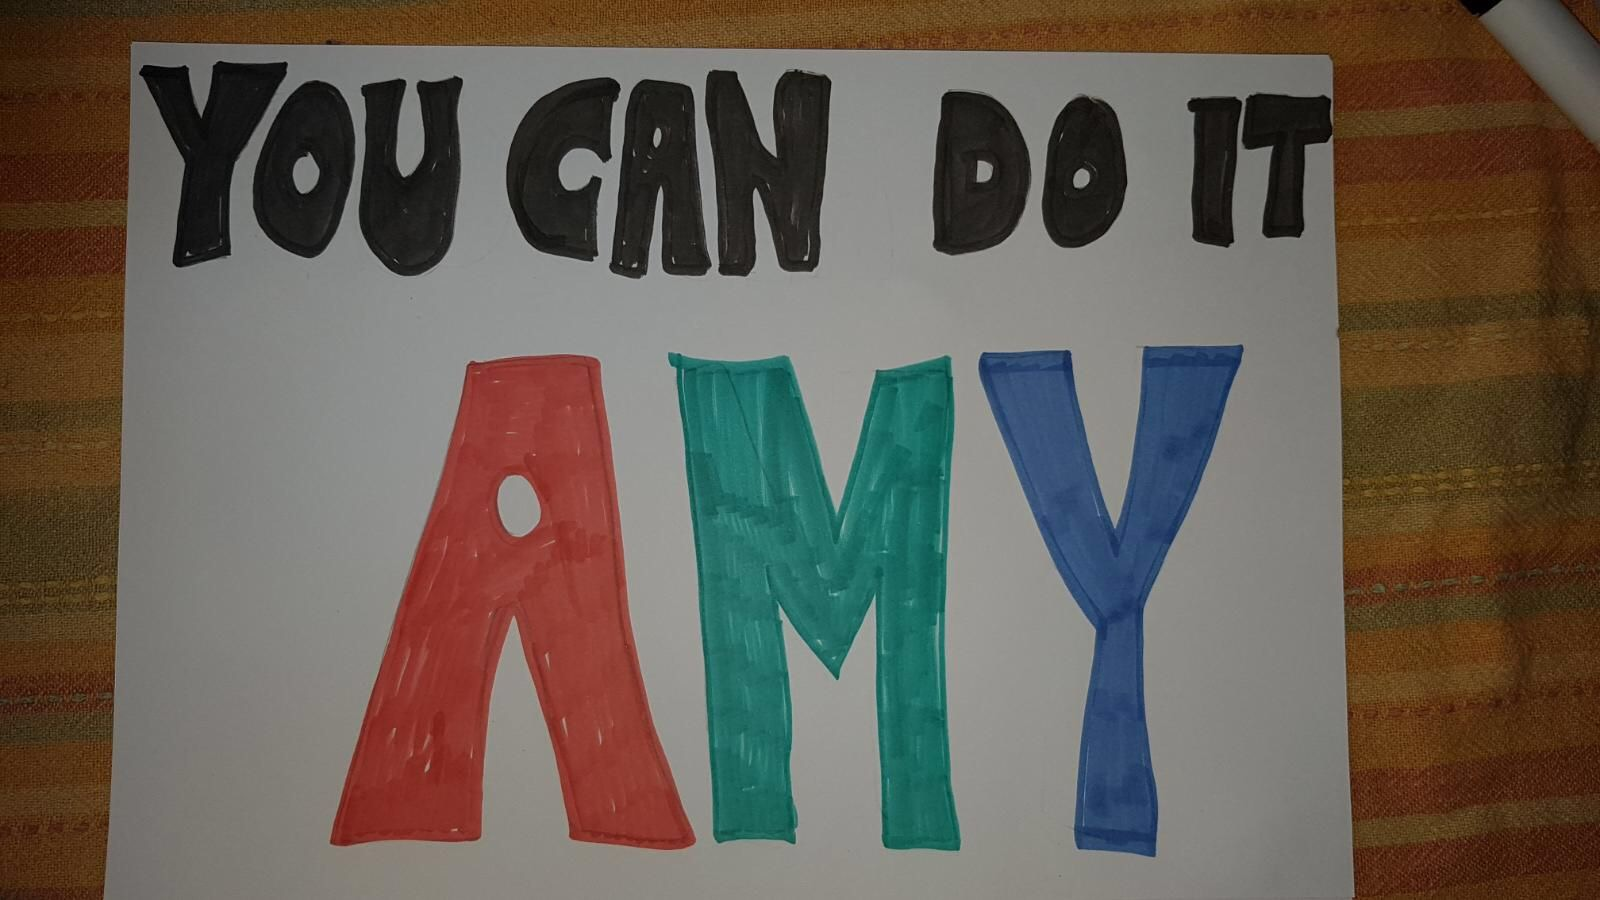 Thanks to Aly for the sign!